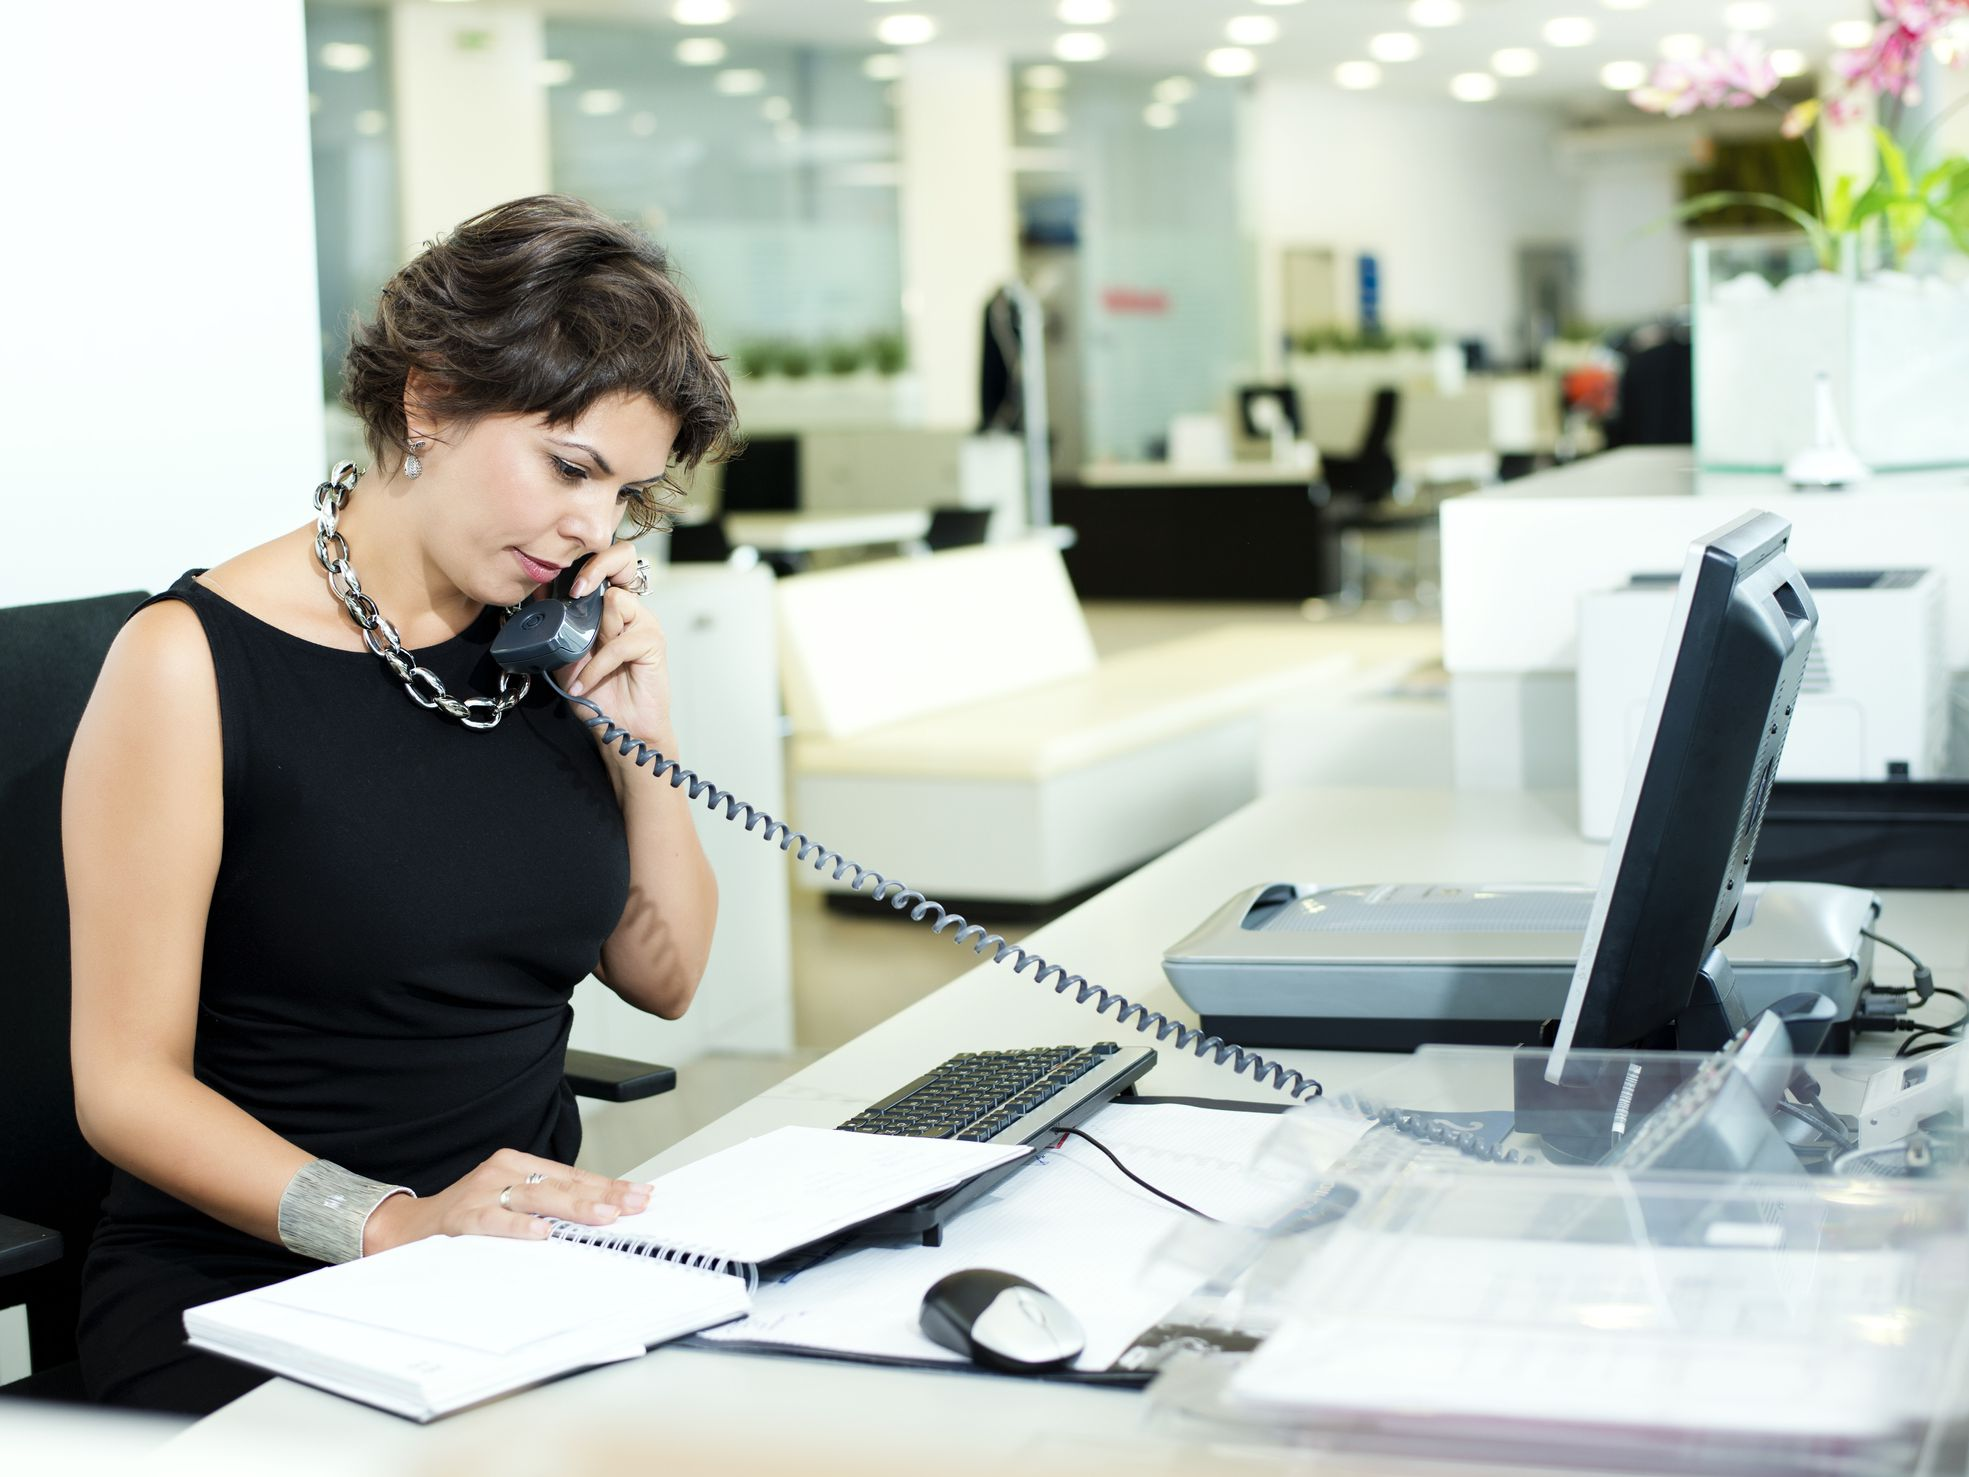 Astonishing Common Receptionist Interview Questions And Best Answers Beutiful Home Inspiration Semekurdistantinfo